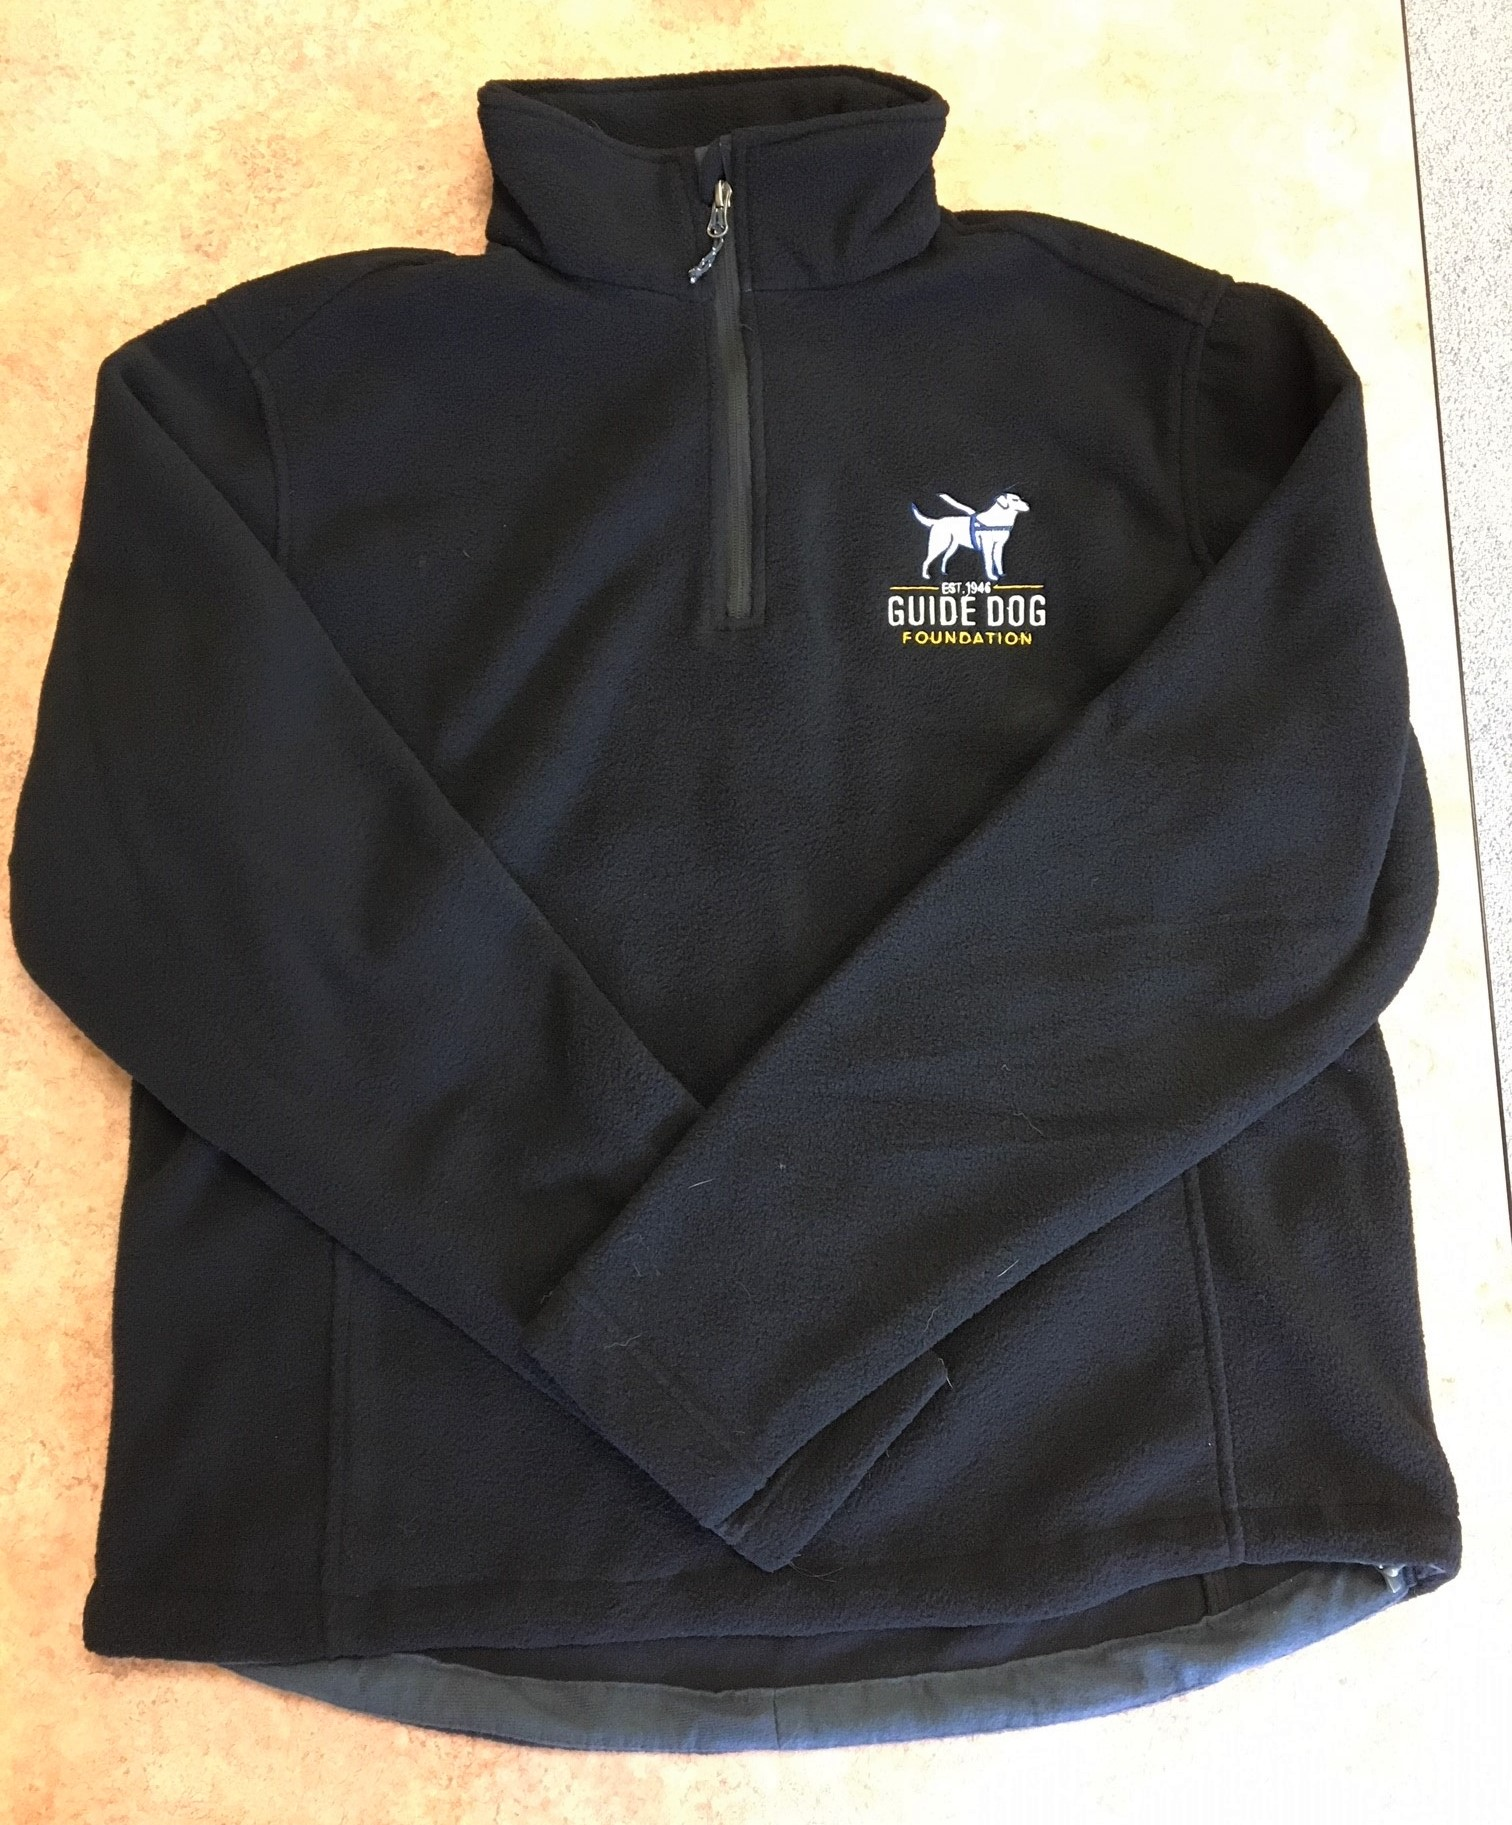 Guide Dog Foundation 1/4-Zip Fleece Pullover Jacket - XL